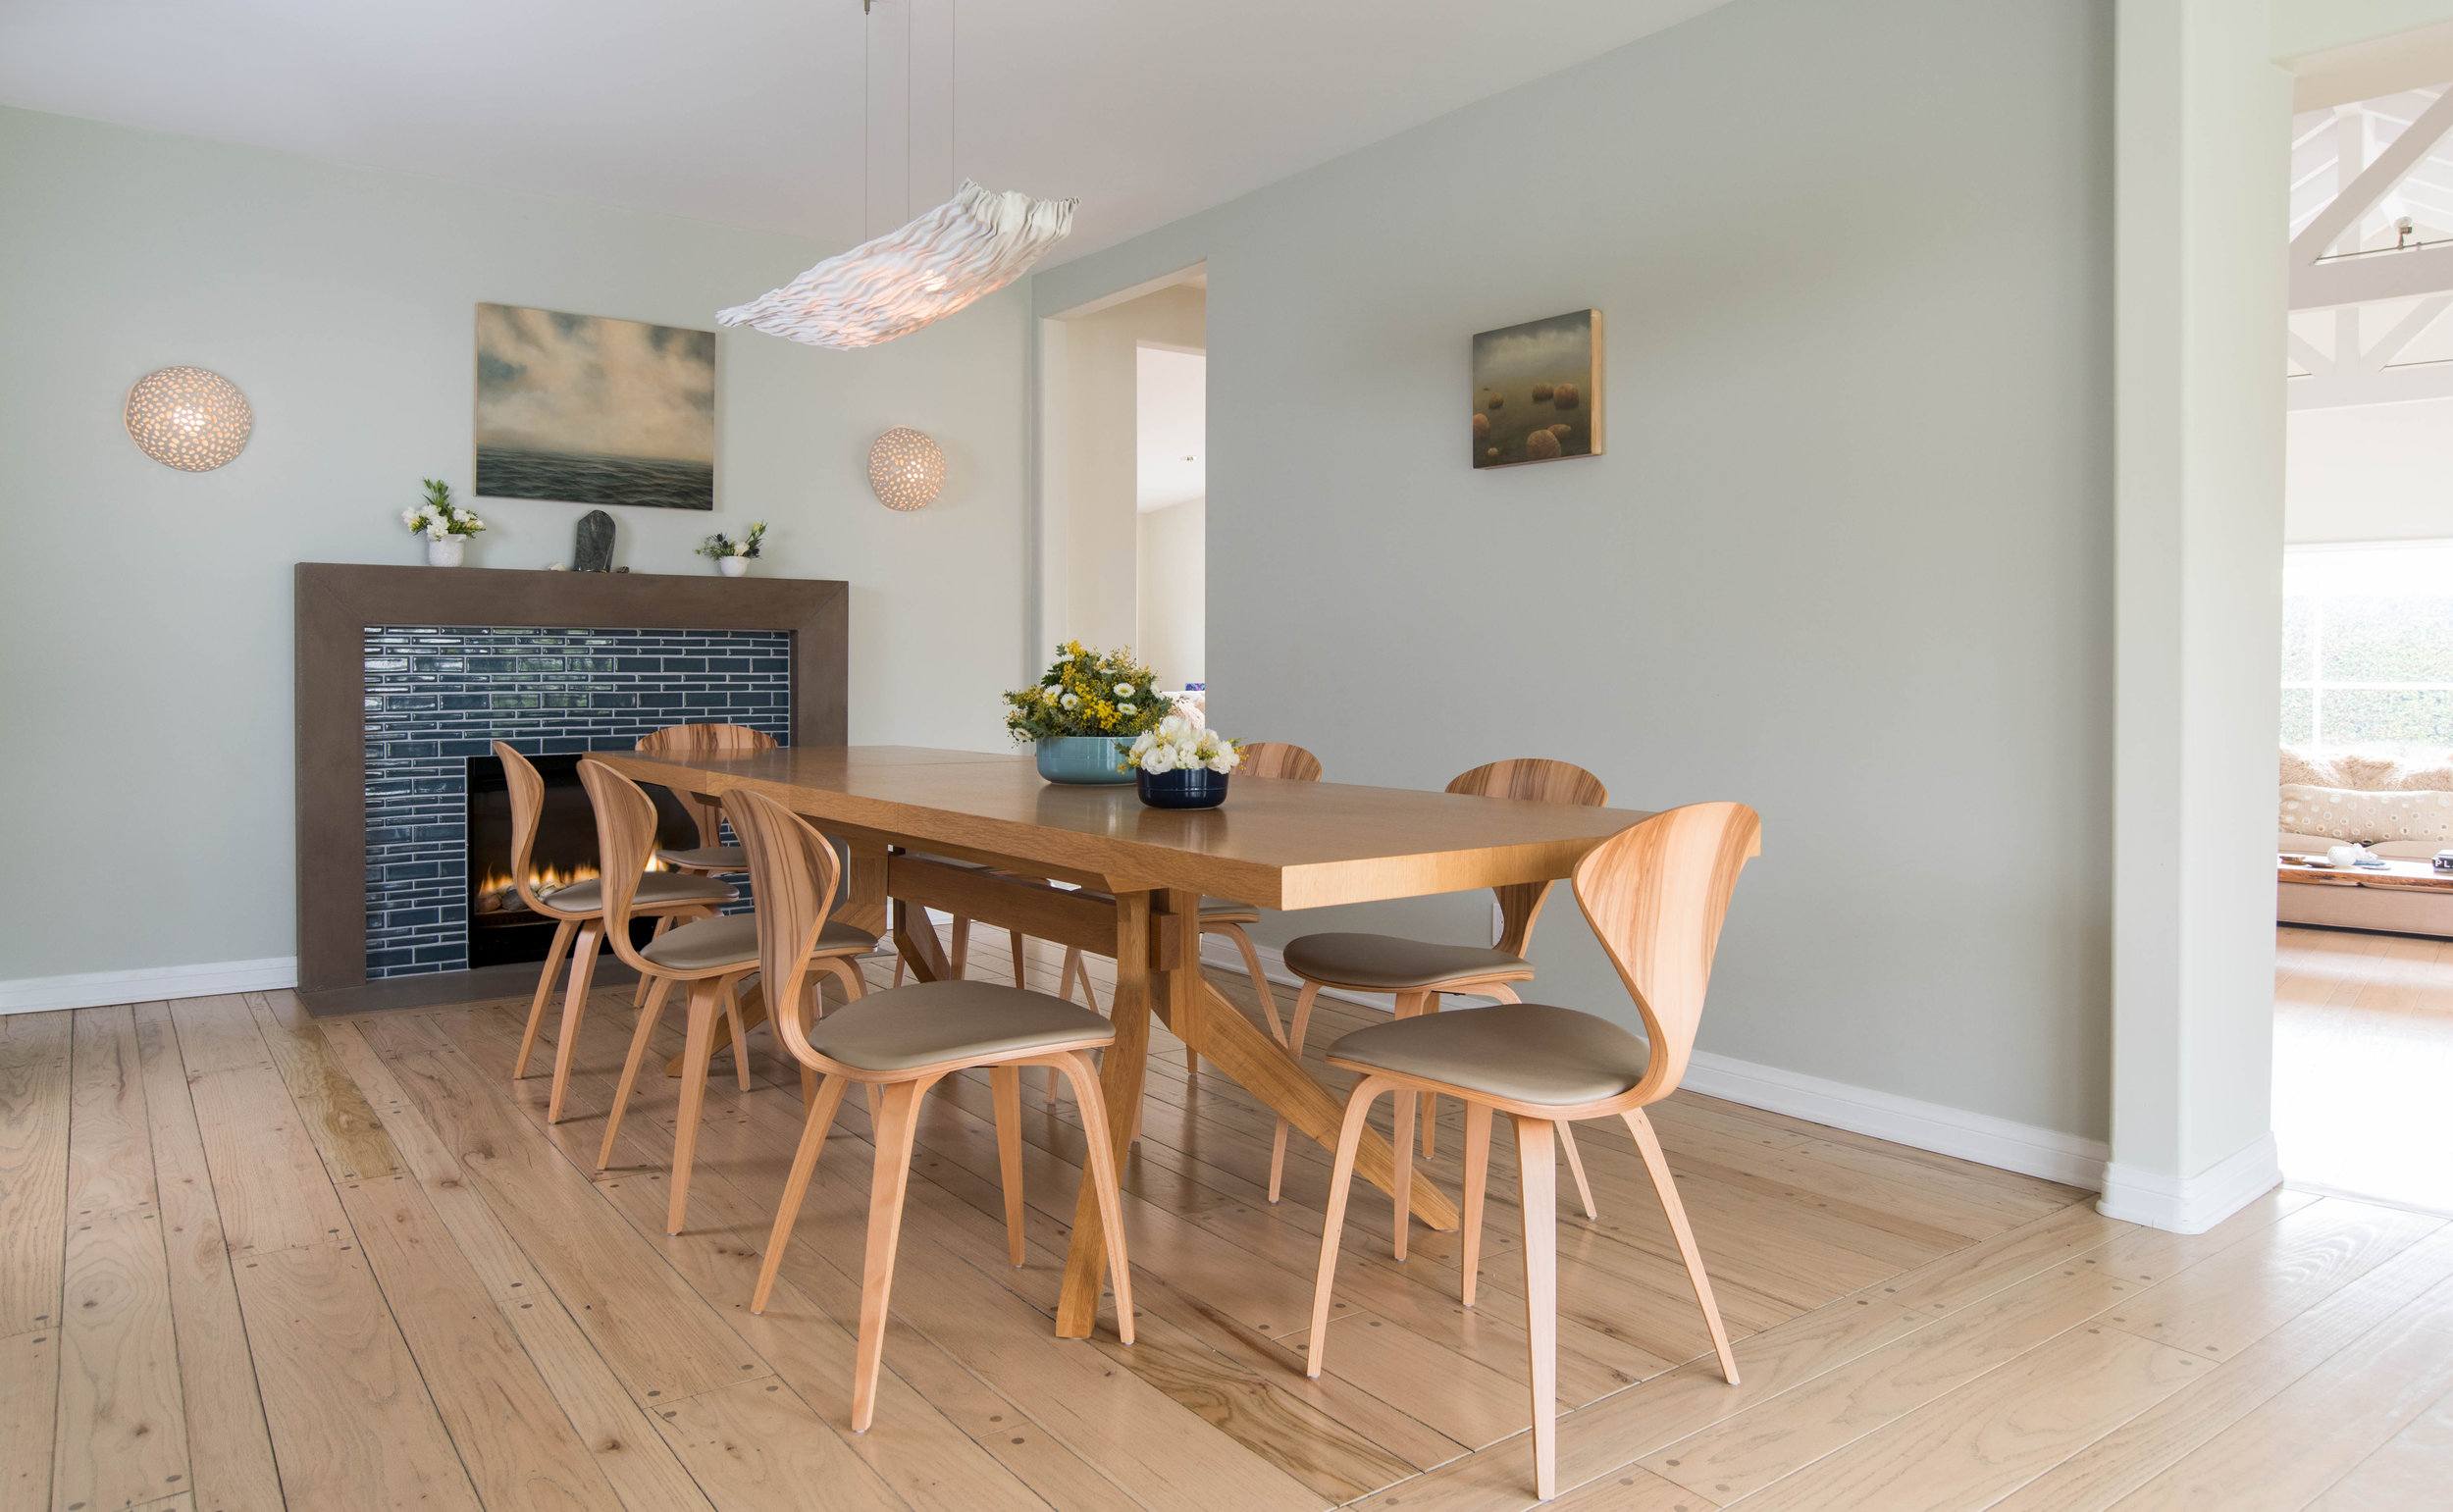 Natural dining chairs by the Cherner Chair Company have a slim silhouette.